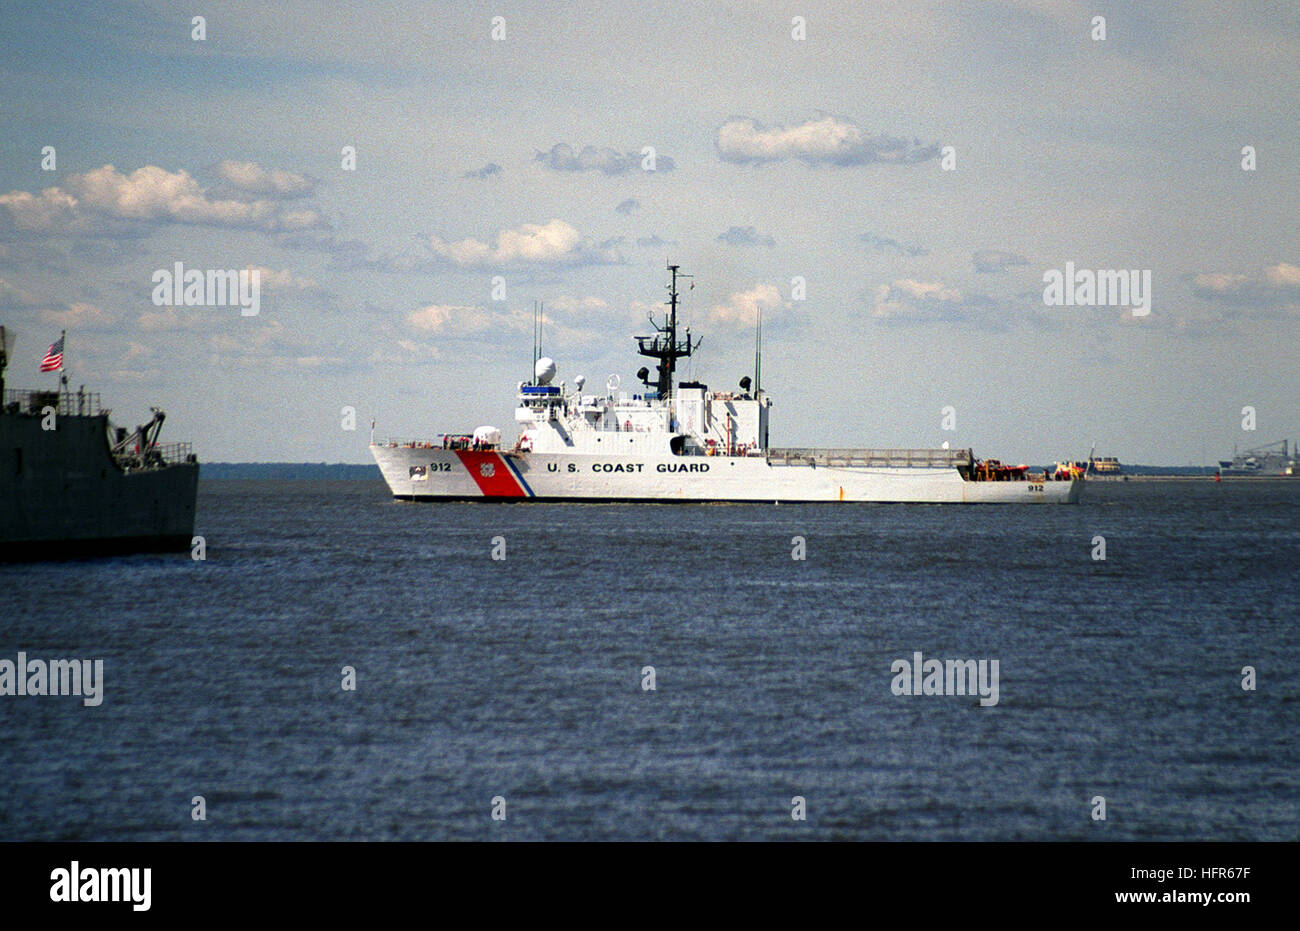 Port side view of the US Coast Guard Famous Class Medium-Endurance Cutter USCG LEGARE (WMEC 912) passing by pier - Stock Image